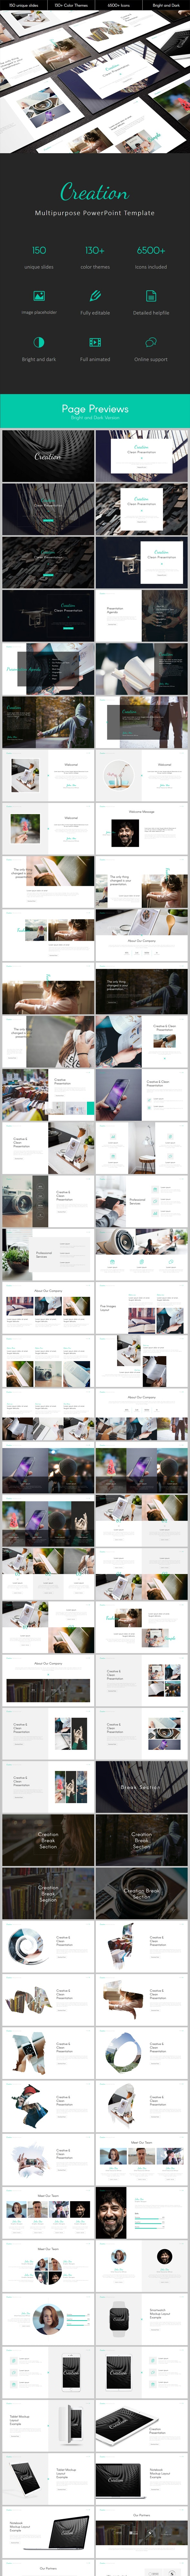 Creation Multipurpose PowerPoint Template - Business PowerPoint Templates